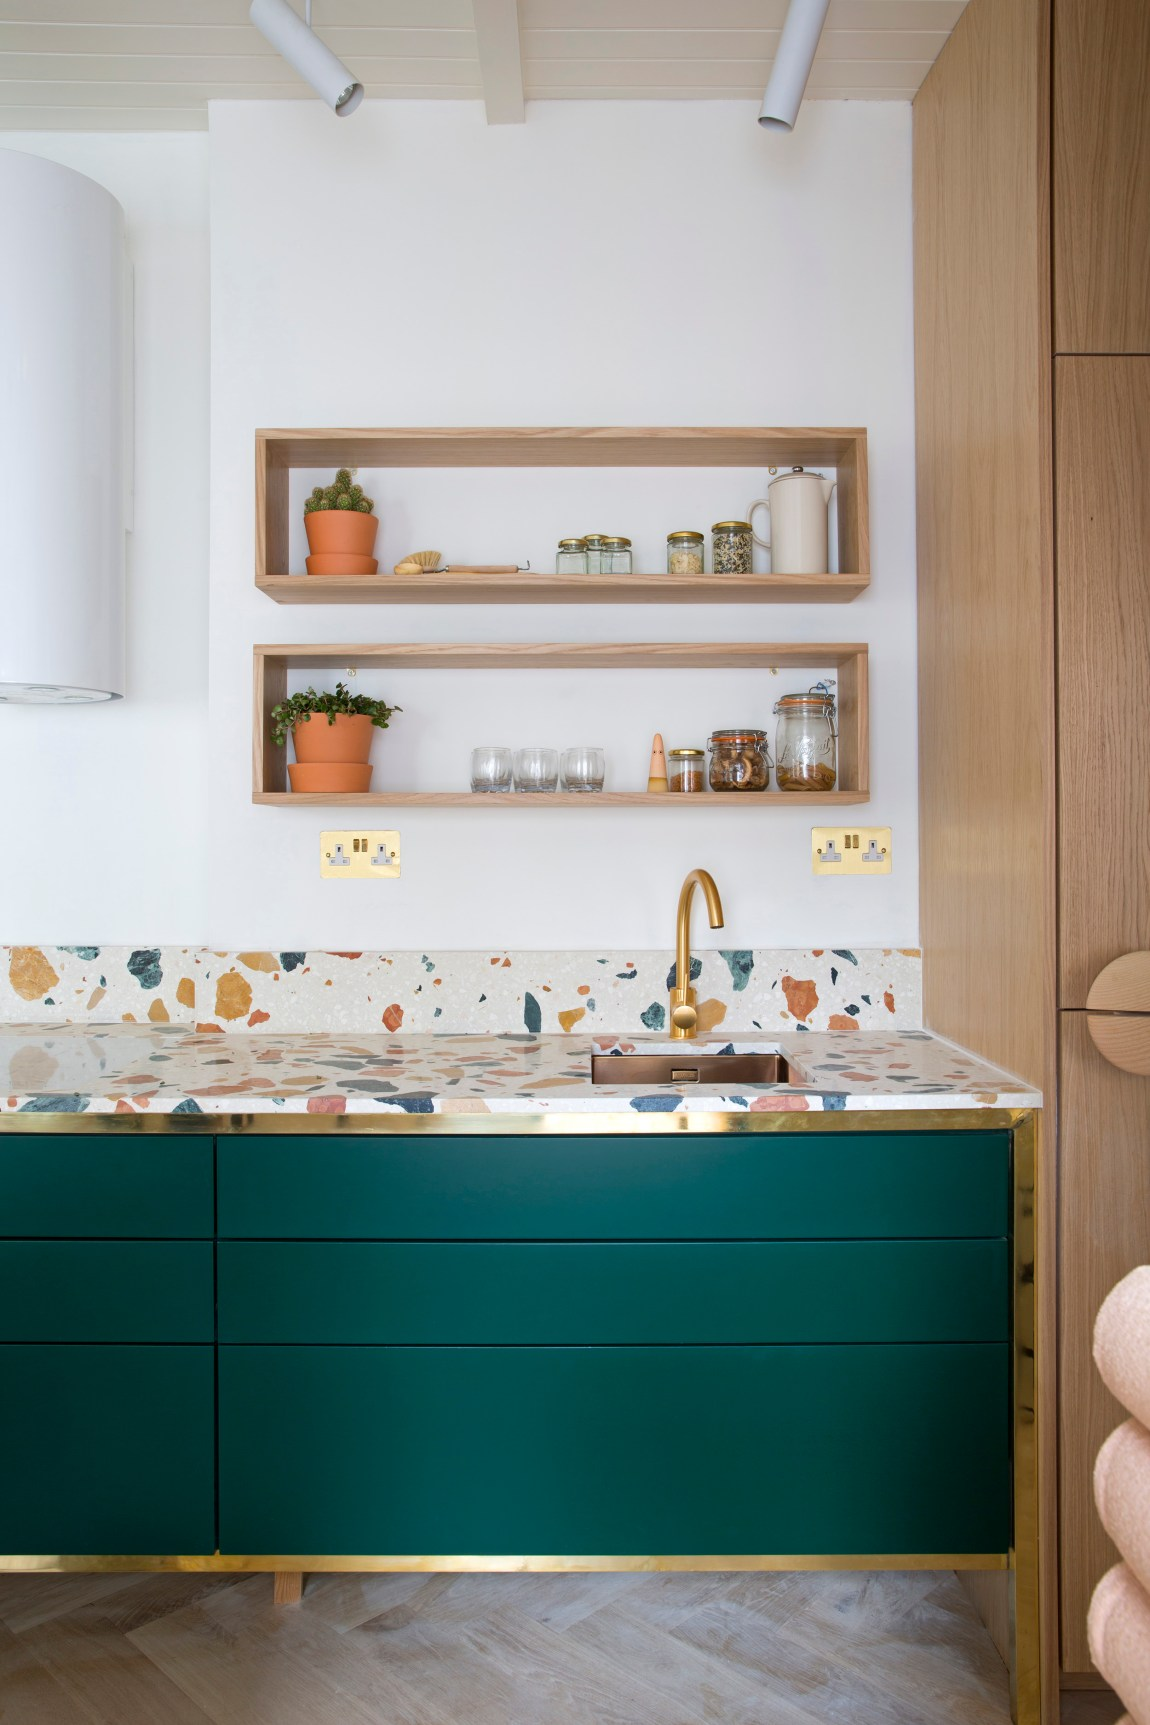 The Real Kitchen Design Trends In 2019 The Most Chic